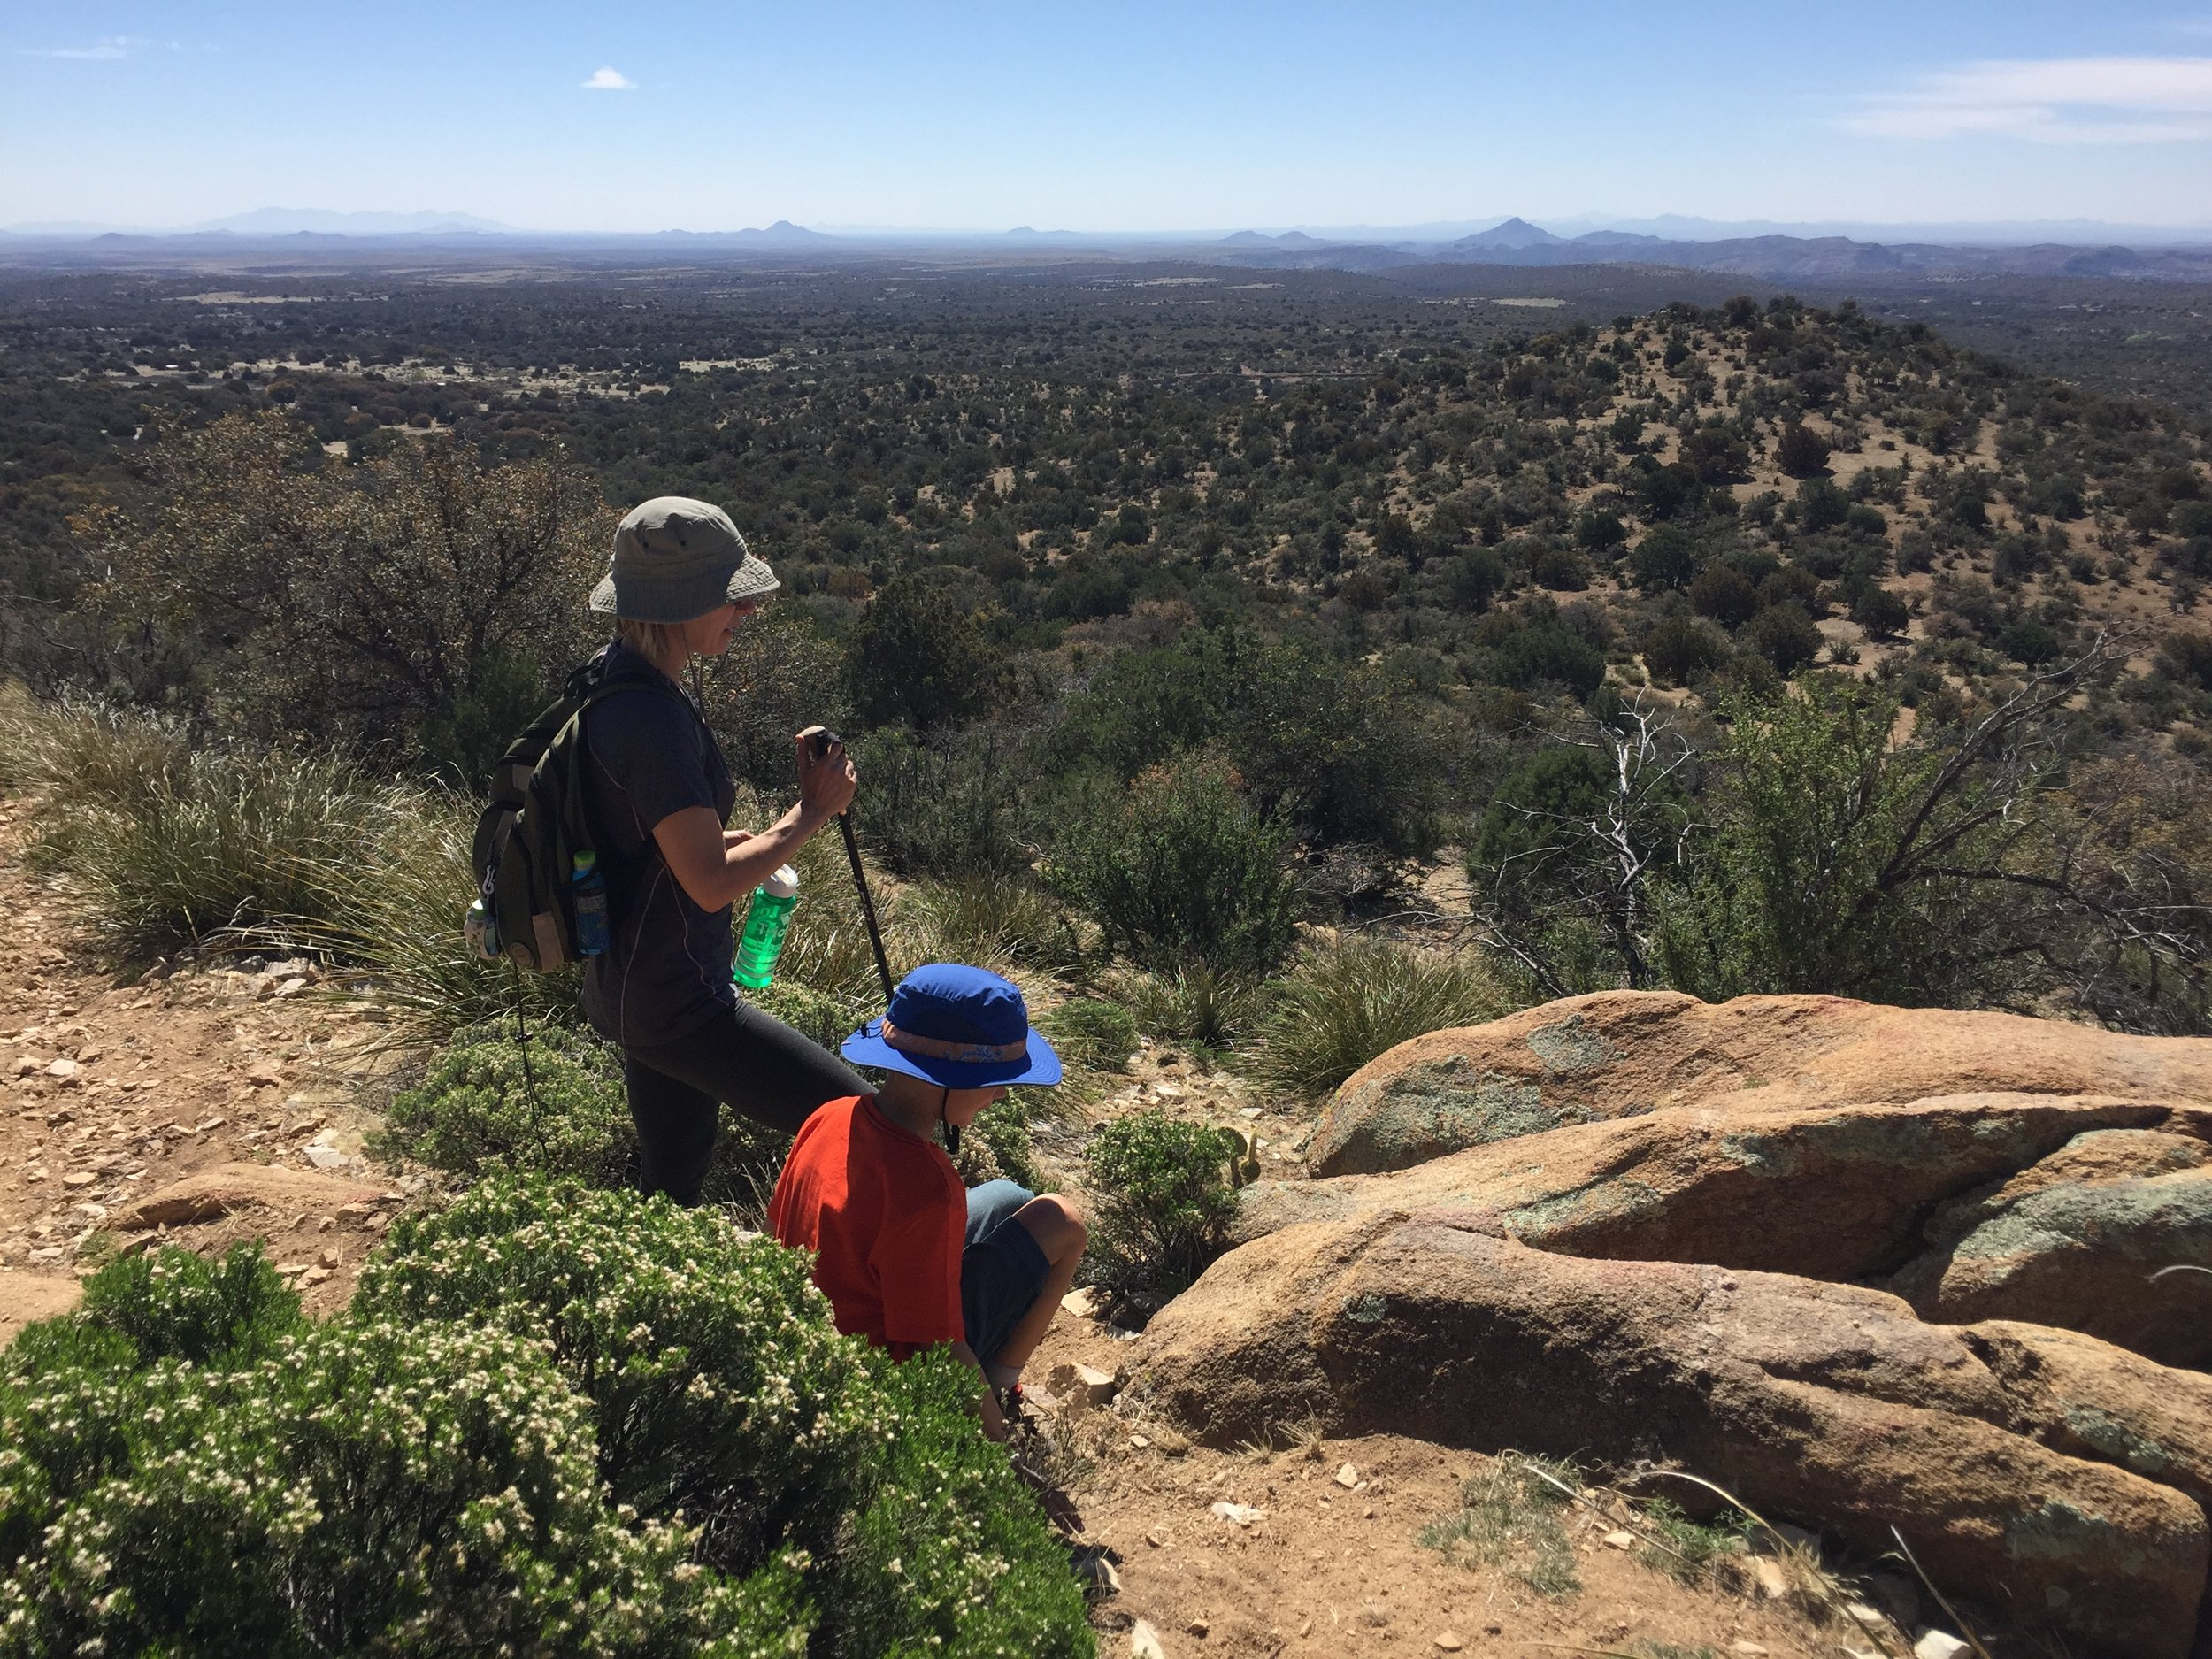 Hiking up a hill in Gila National Forest